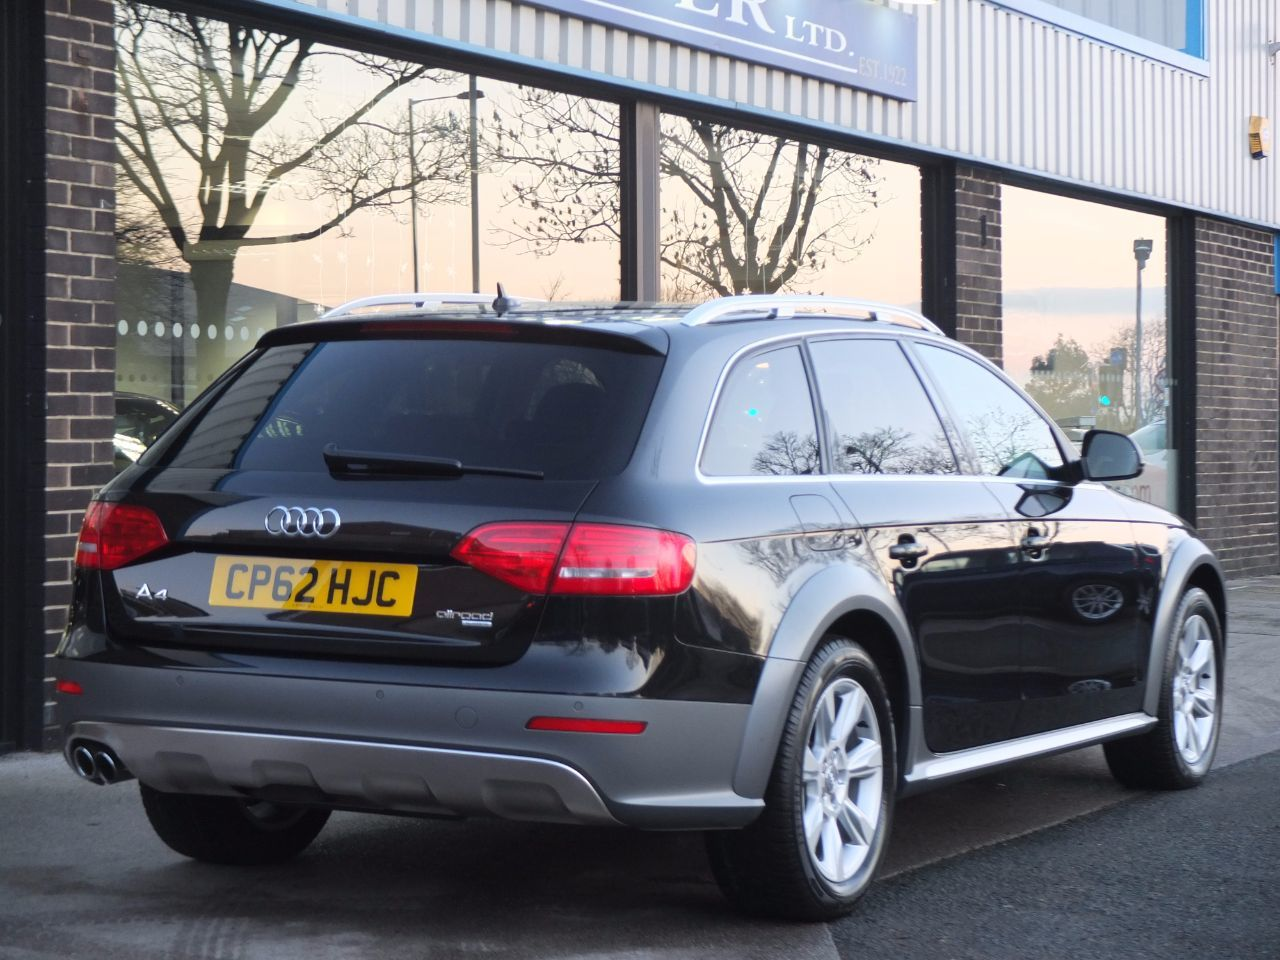 Audi A4 Allroad 2.0 TDI quattro S tronic 177ps Estate Diesel Phantom Black Metallic